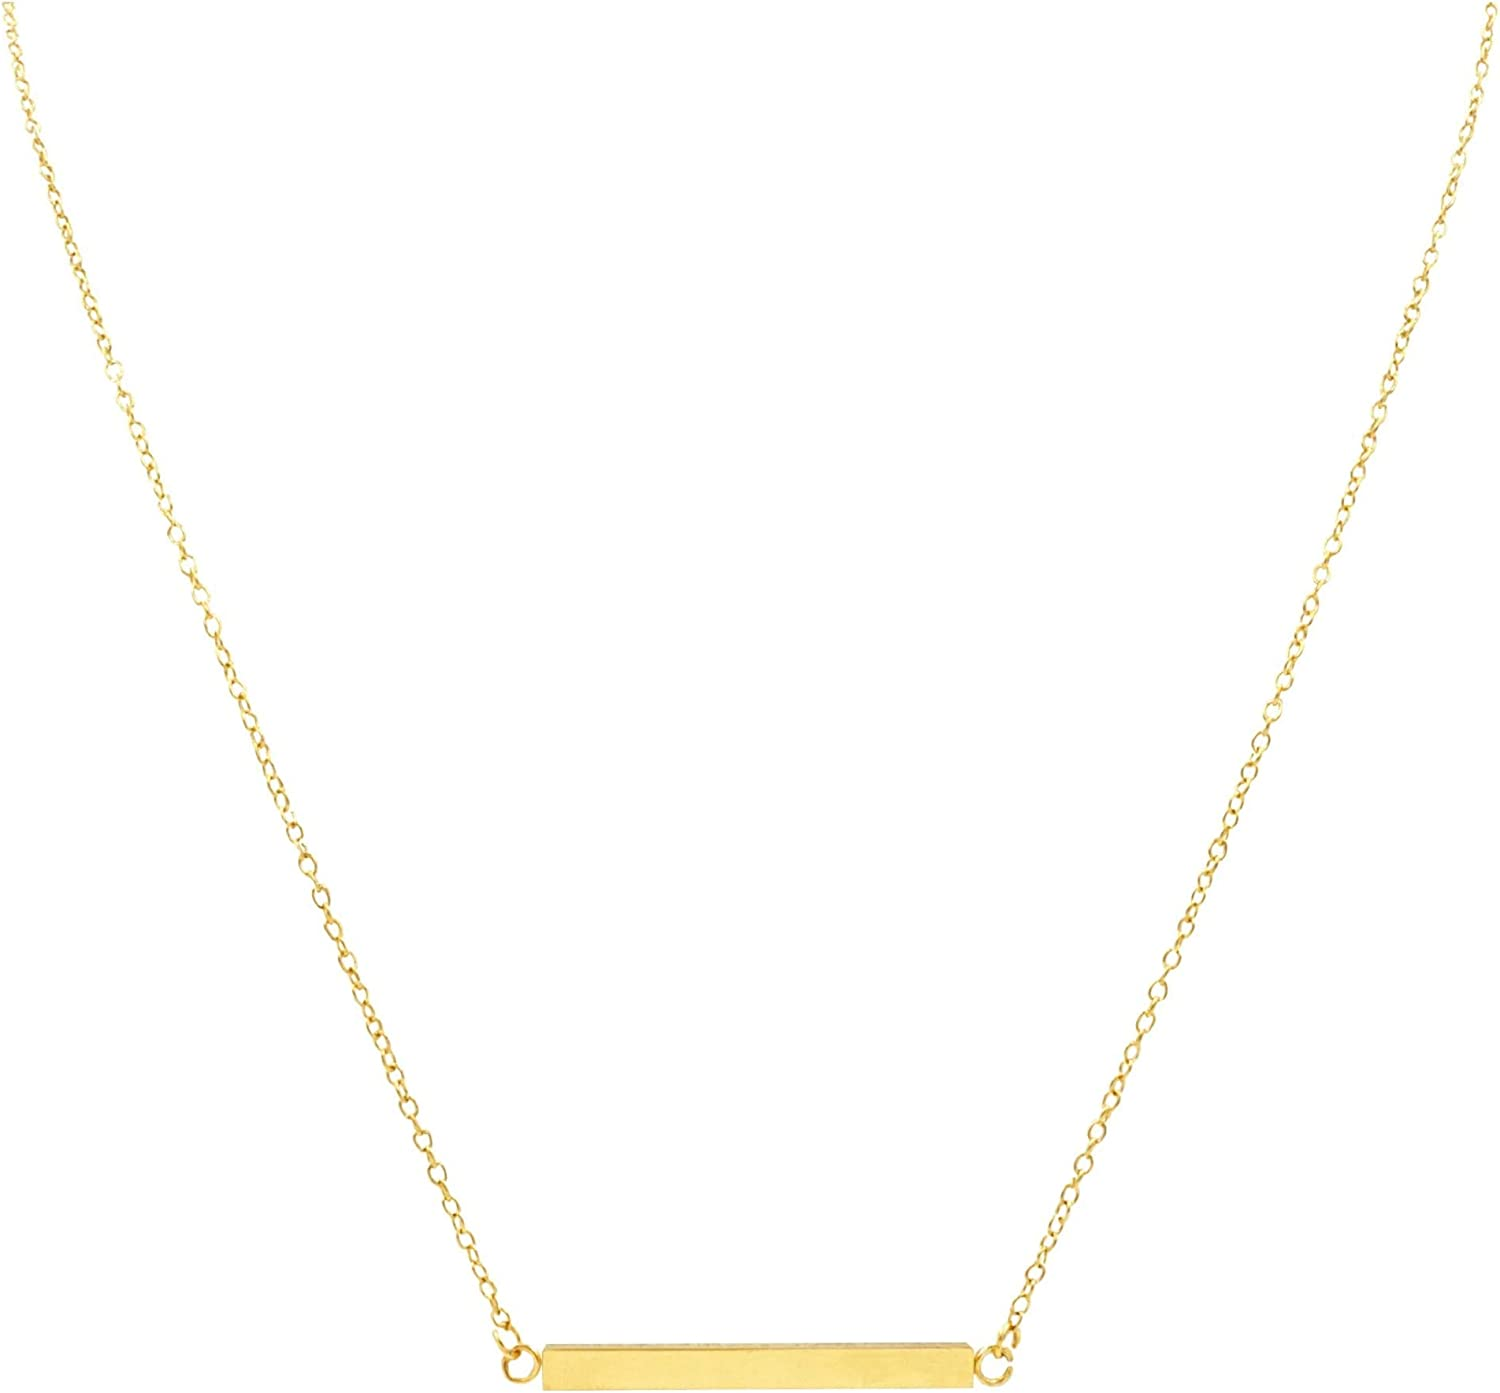 Kinsley Armelle Goddess Collection - Charli Necklace